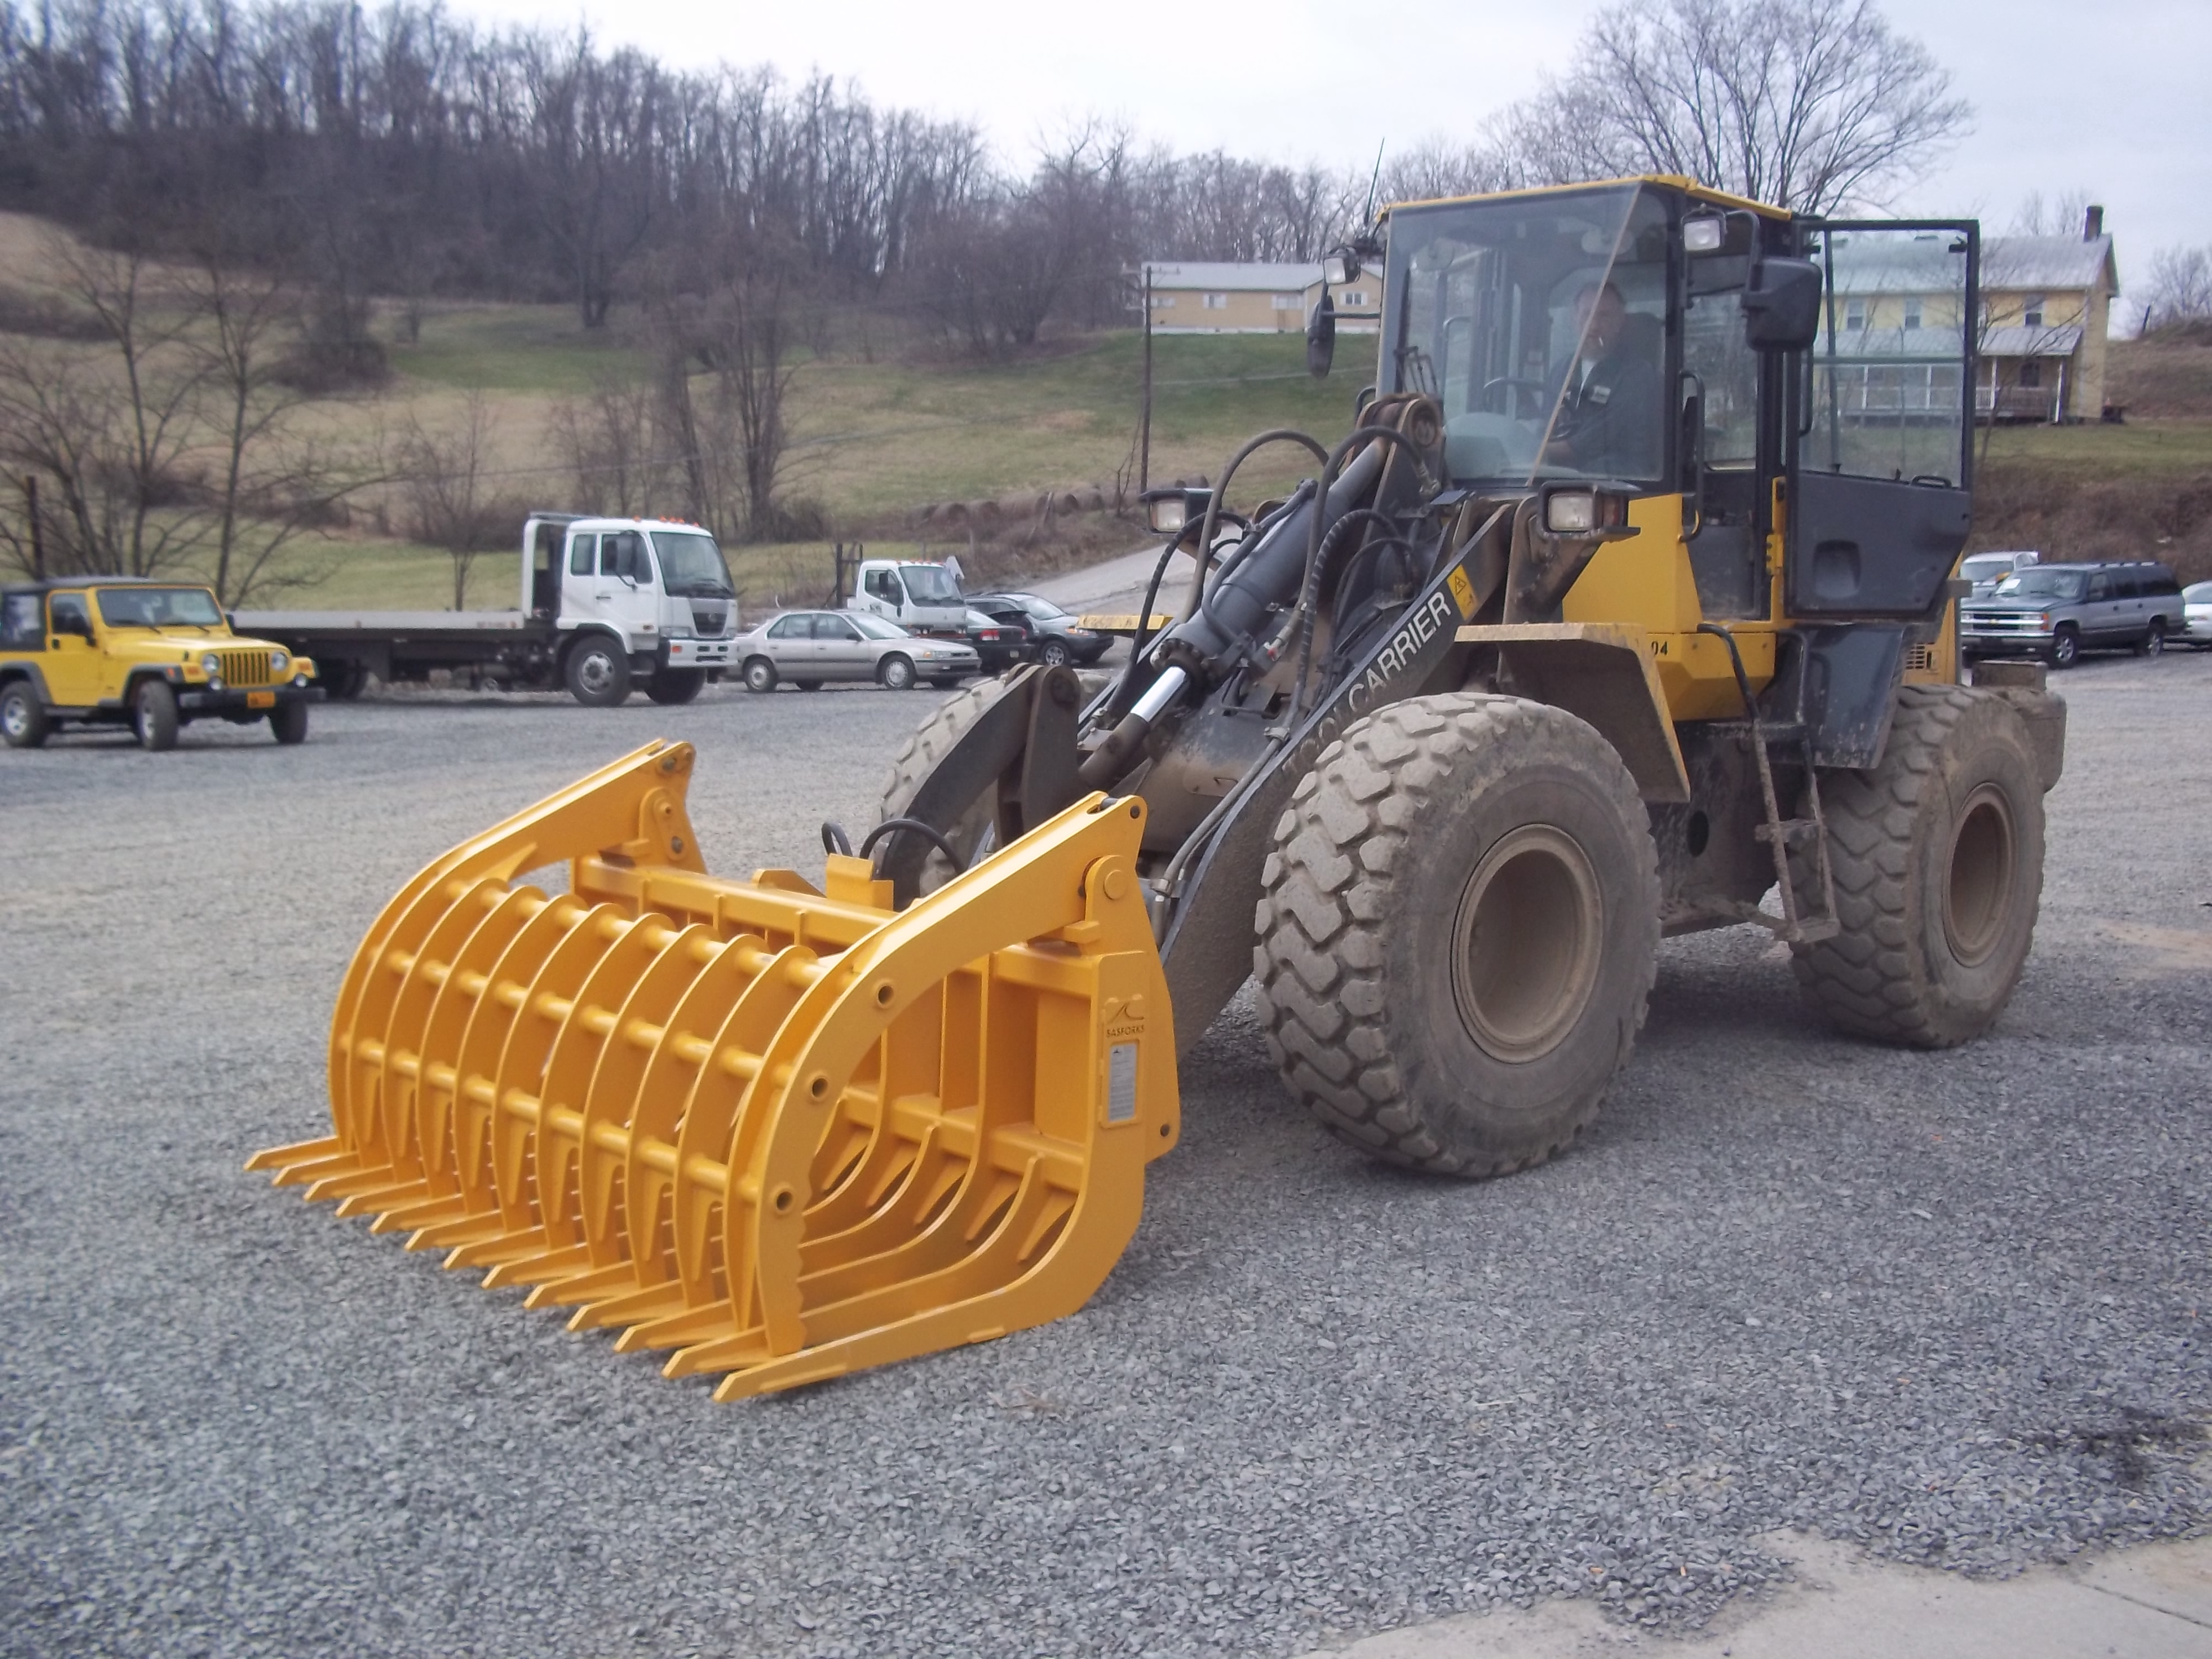 Rake Forks & Grapples in Auto Salvage Forklift Attachments